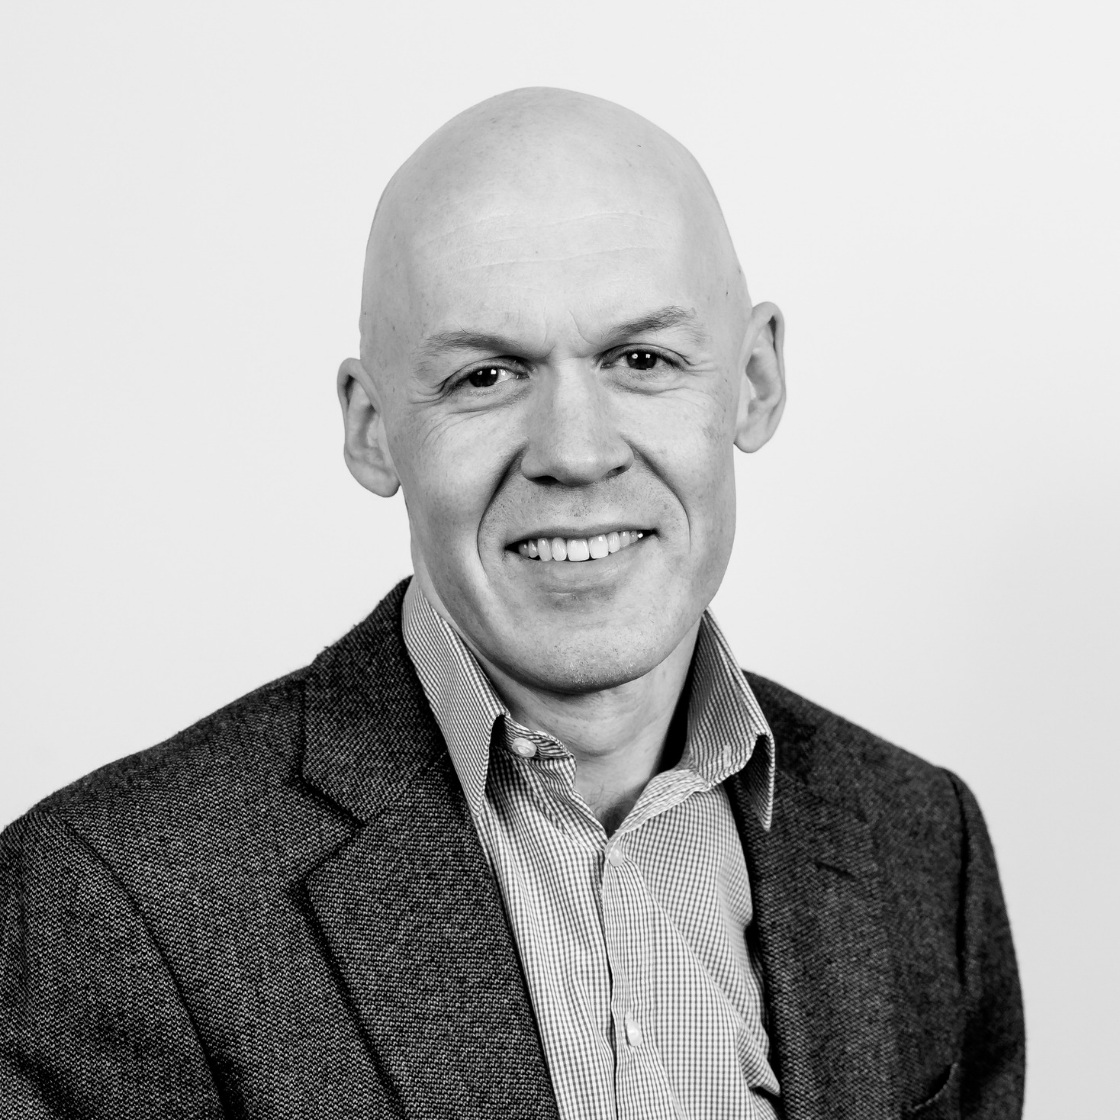 Professor James Banks - Co-Director of the Centre for the Microeconomic Analysis of Public Policy (CPP); Senior Fellow, Institute for Fiscal Studies